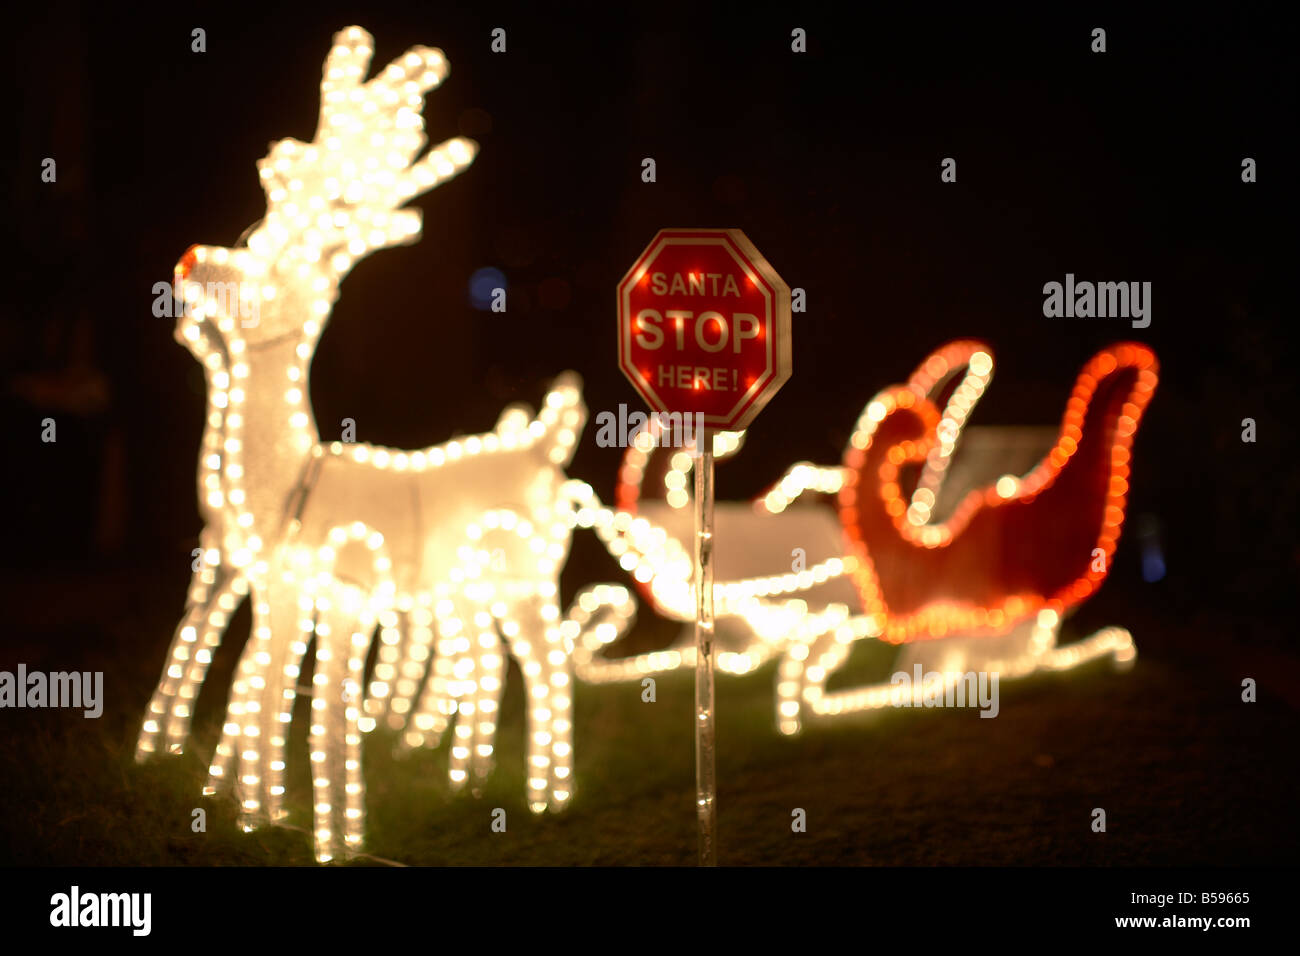 Illuminated christmas light decorations with Santa Stop sign sleigh and reindeer outside a house in Queensland QLD - Stock Image